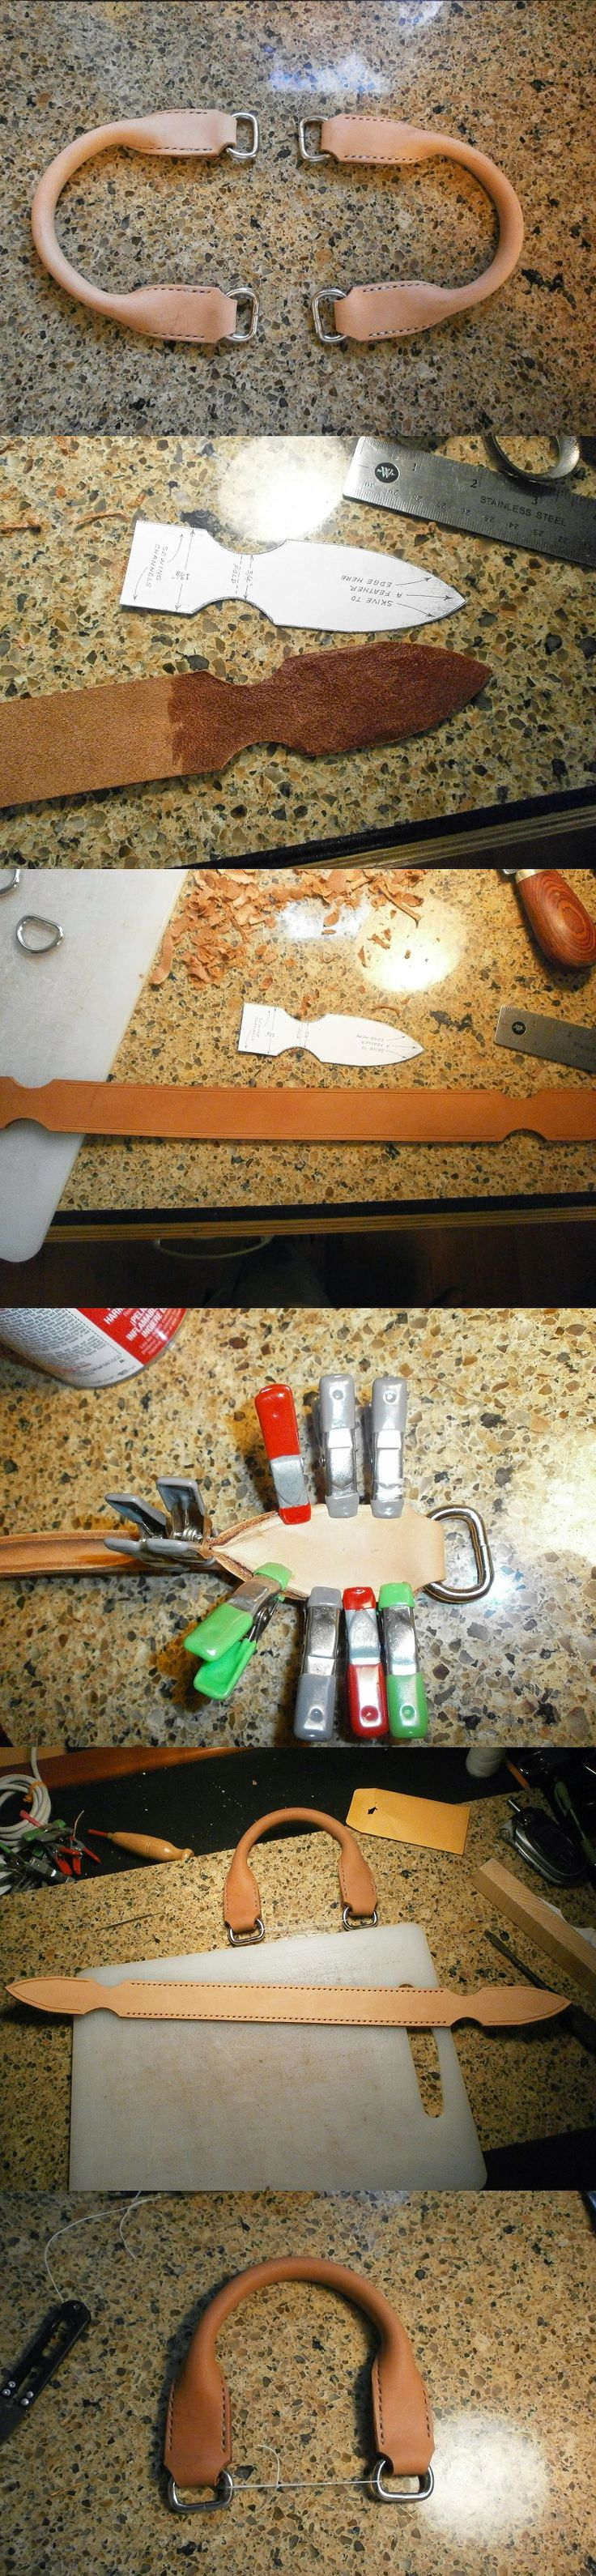 Leather handle tutorial                                                                                                                                                     Más                                                                                                                                                                                 Más